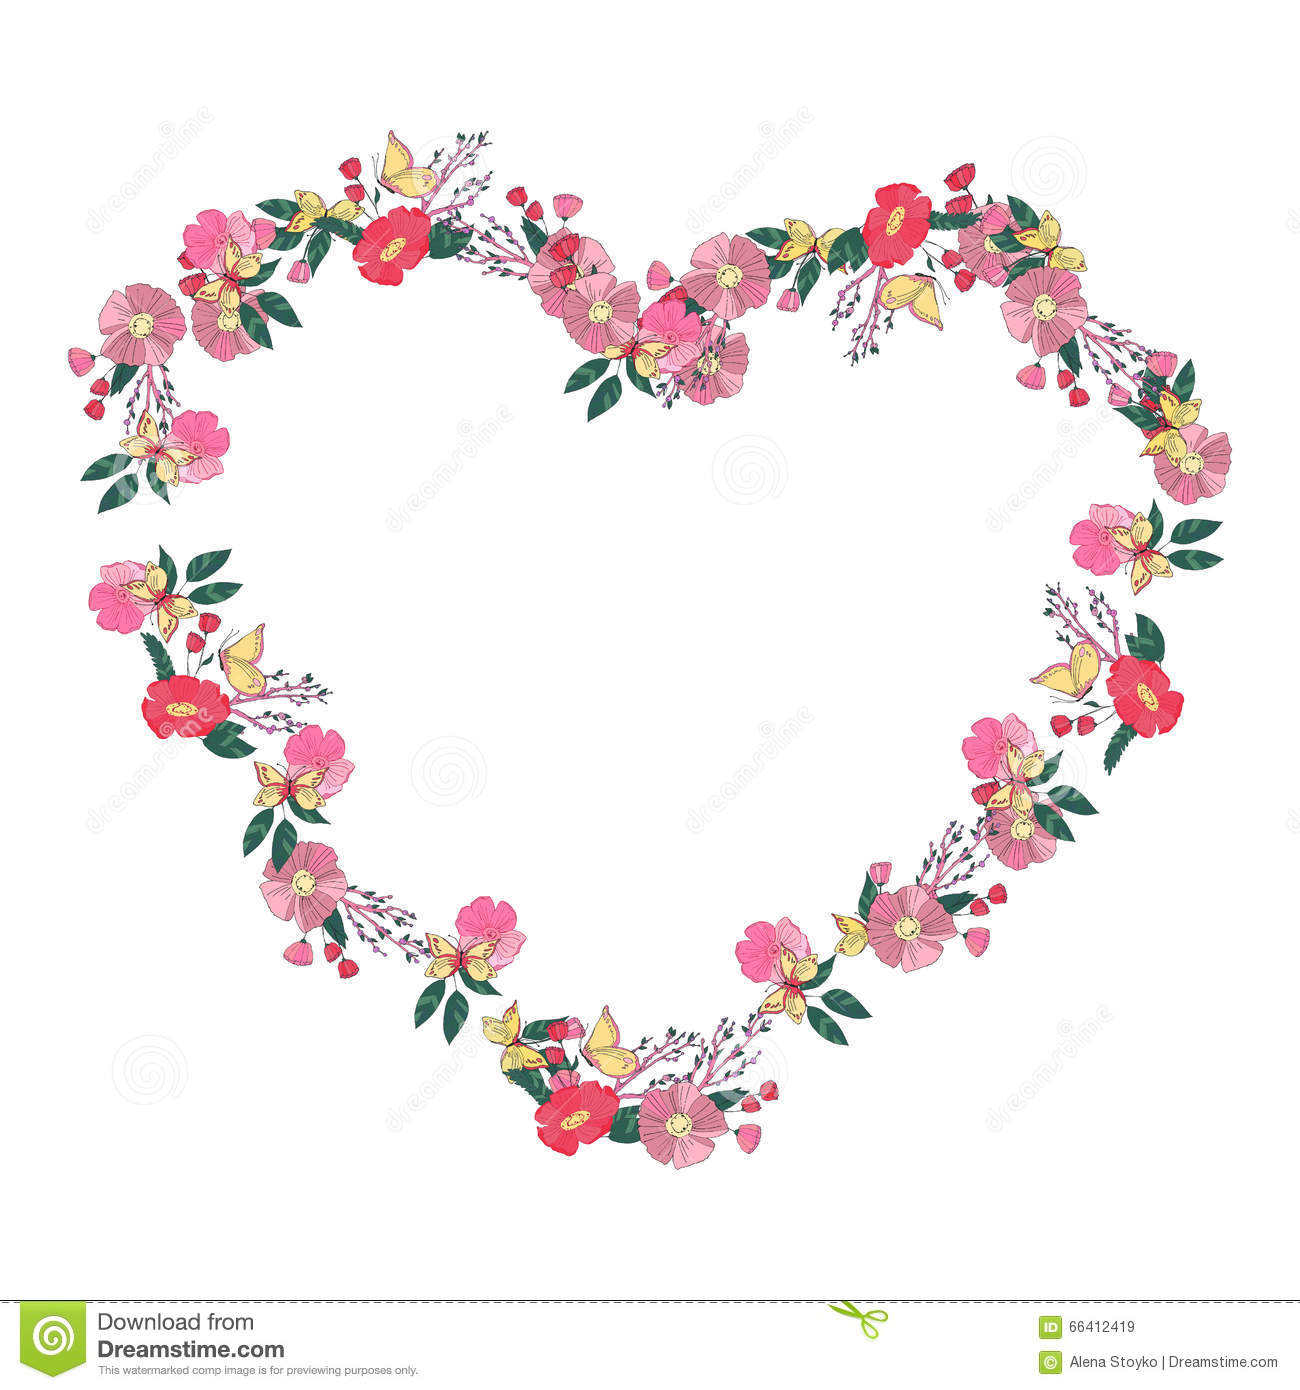 Floral Heartshaped Wreath Made Of Wildflowers Stock Vector.